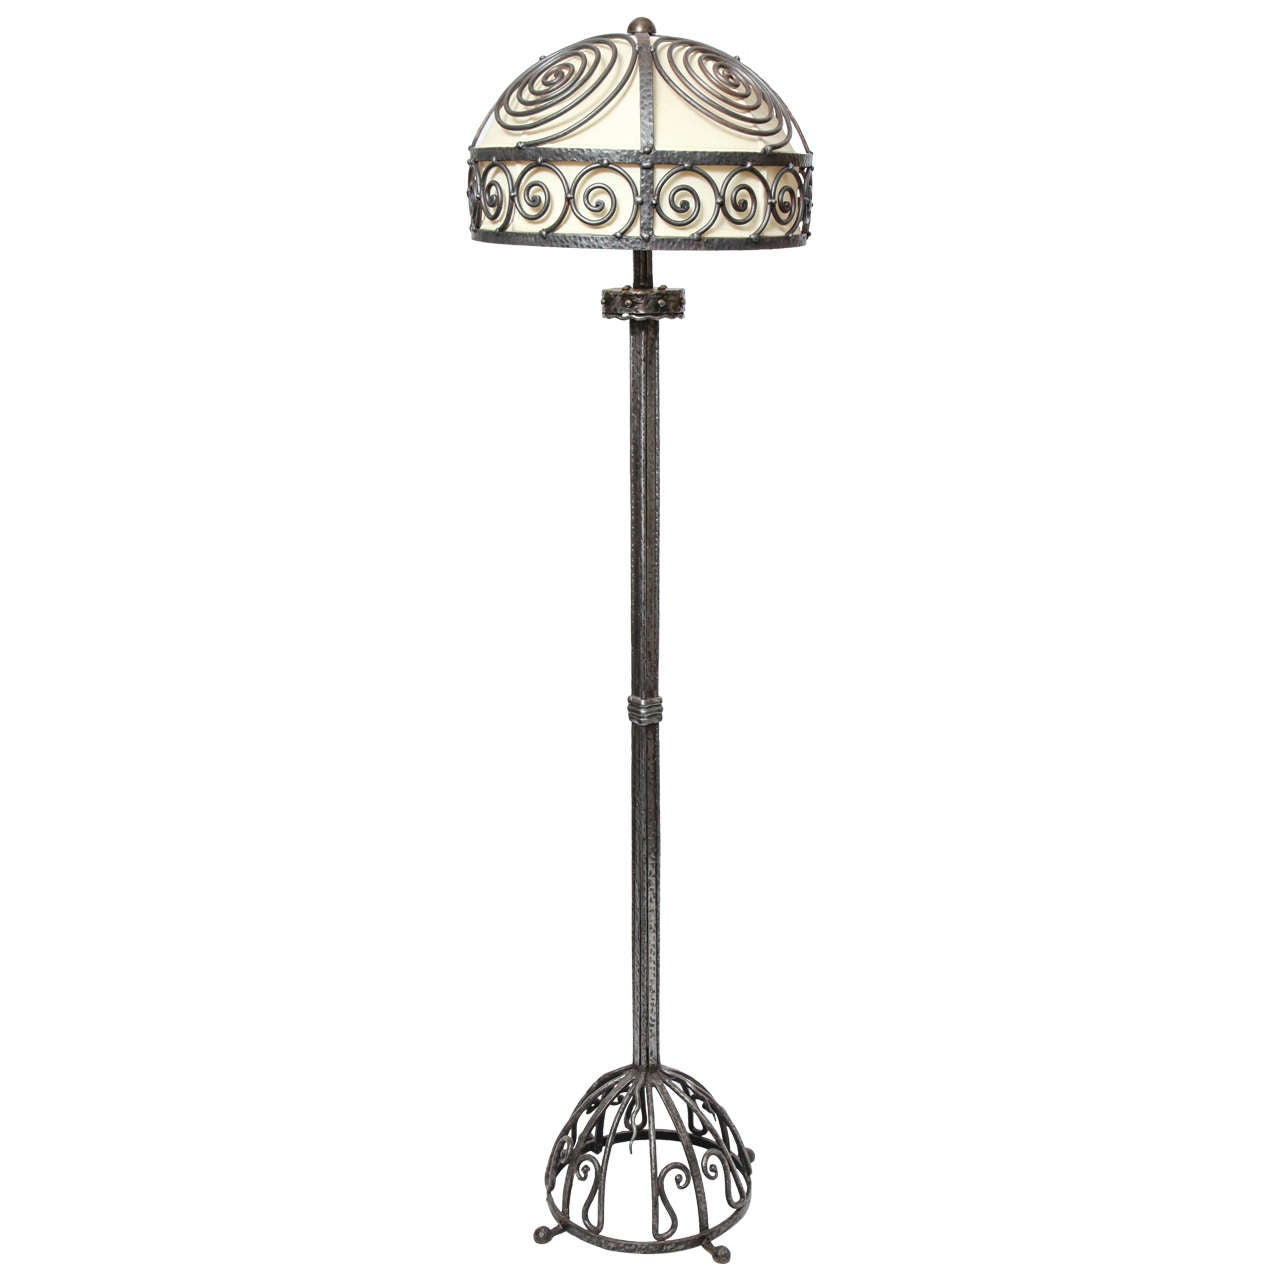 French Art Deco, Hand-Wrought Iron Floor Lamp For Sale